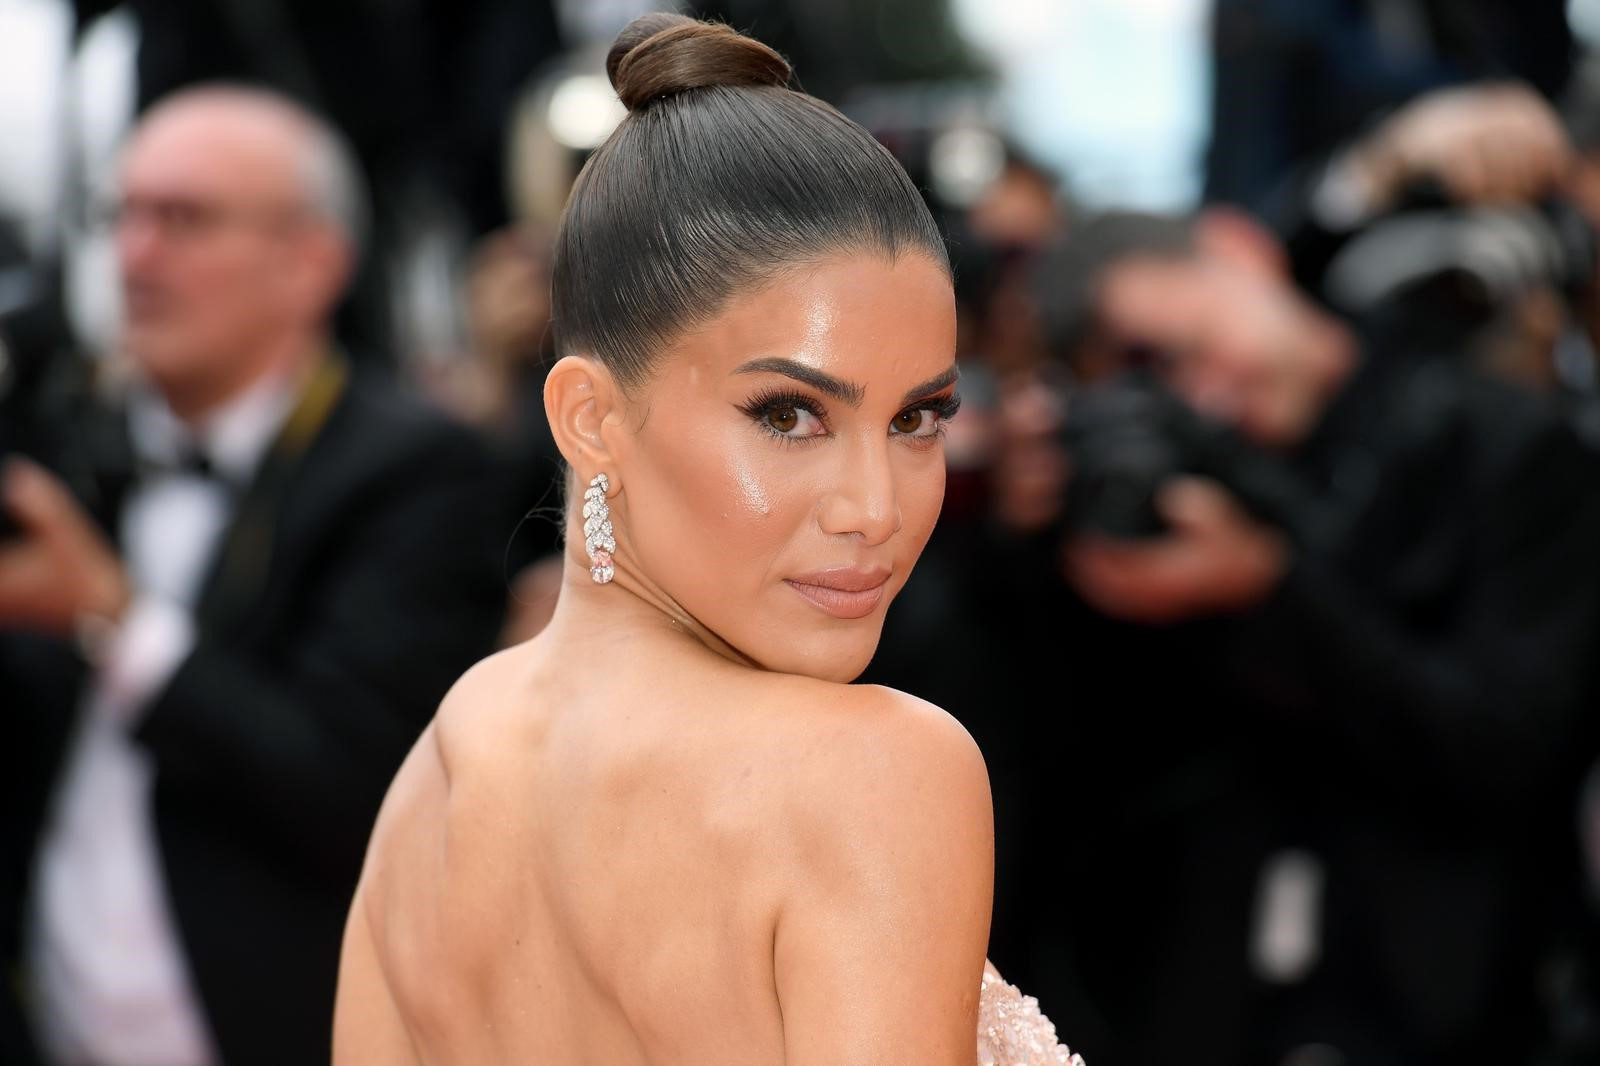 Cannes 2019 red carpet